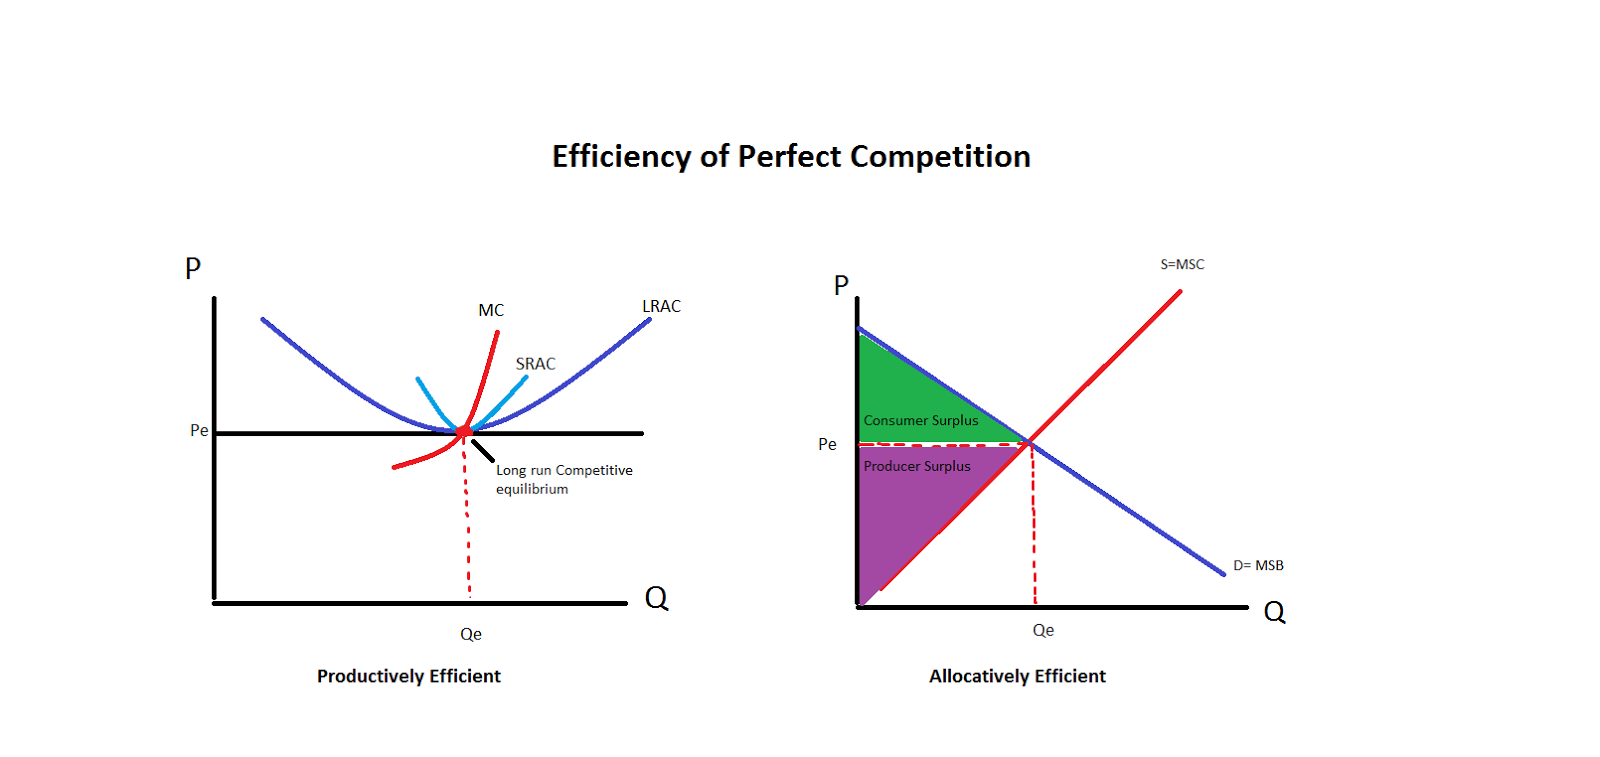 essays on perfect competition Monopoly and perfect competition in this essay, i will analyze how economic welfare changes if a market structure changing from perfect competition to a monopoly.